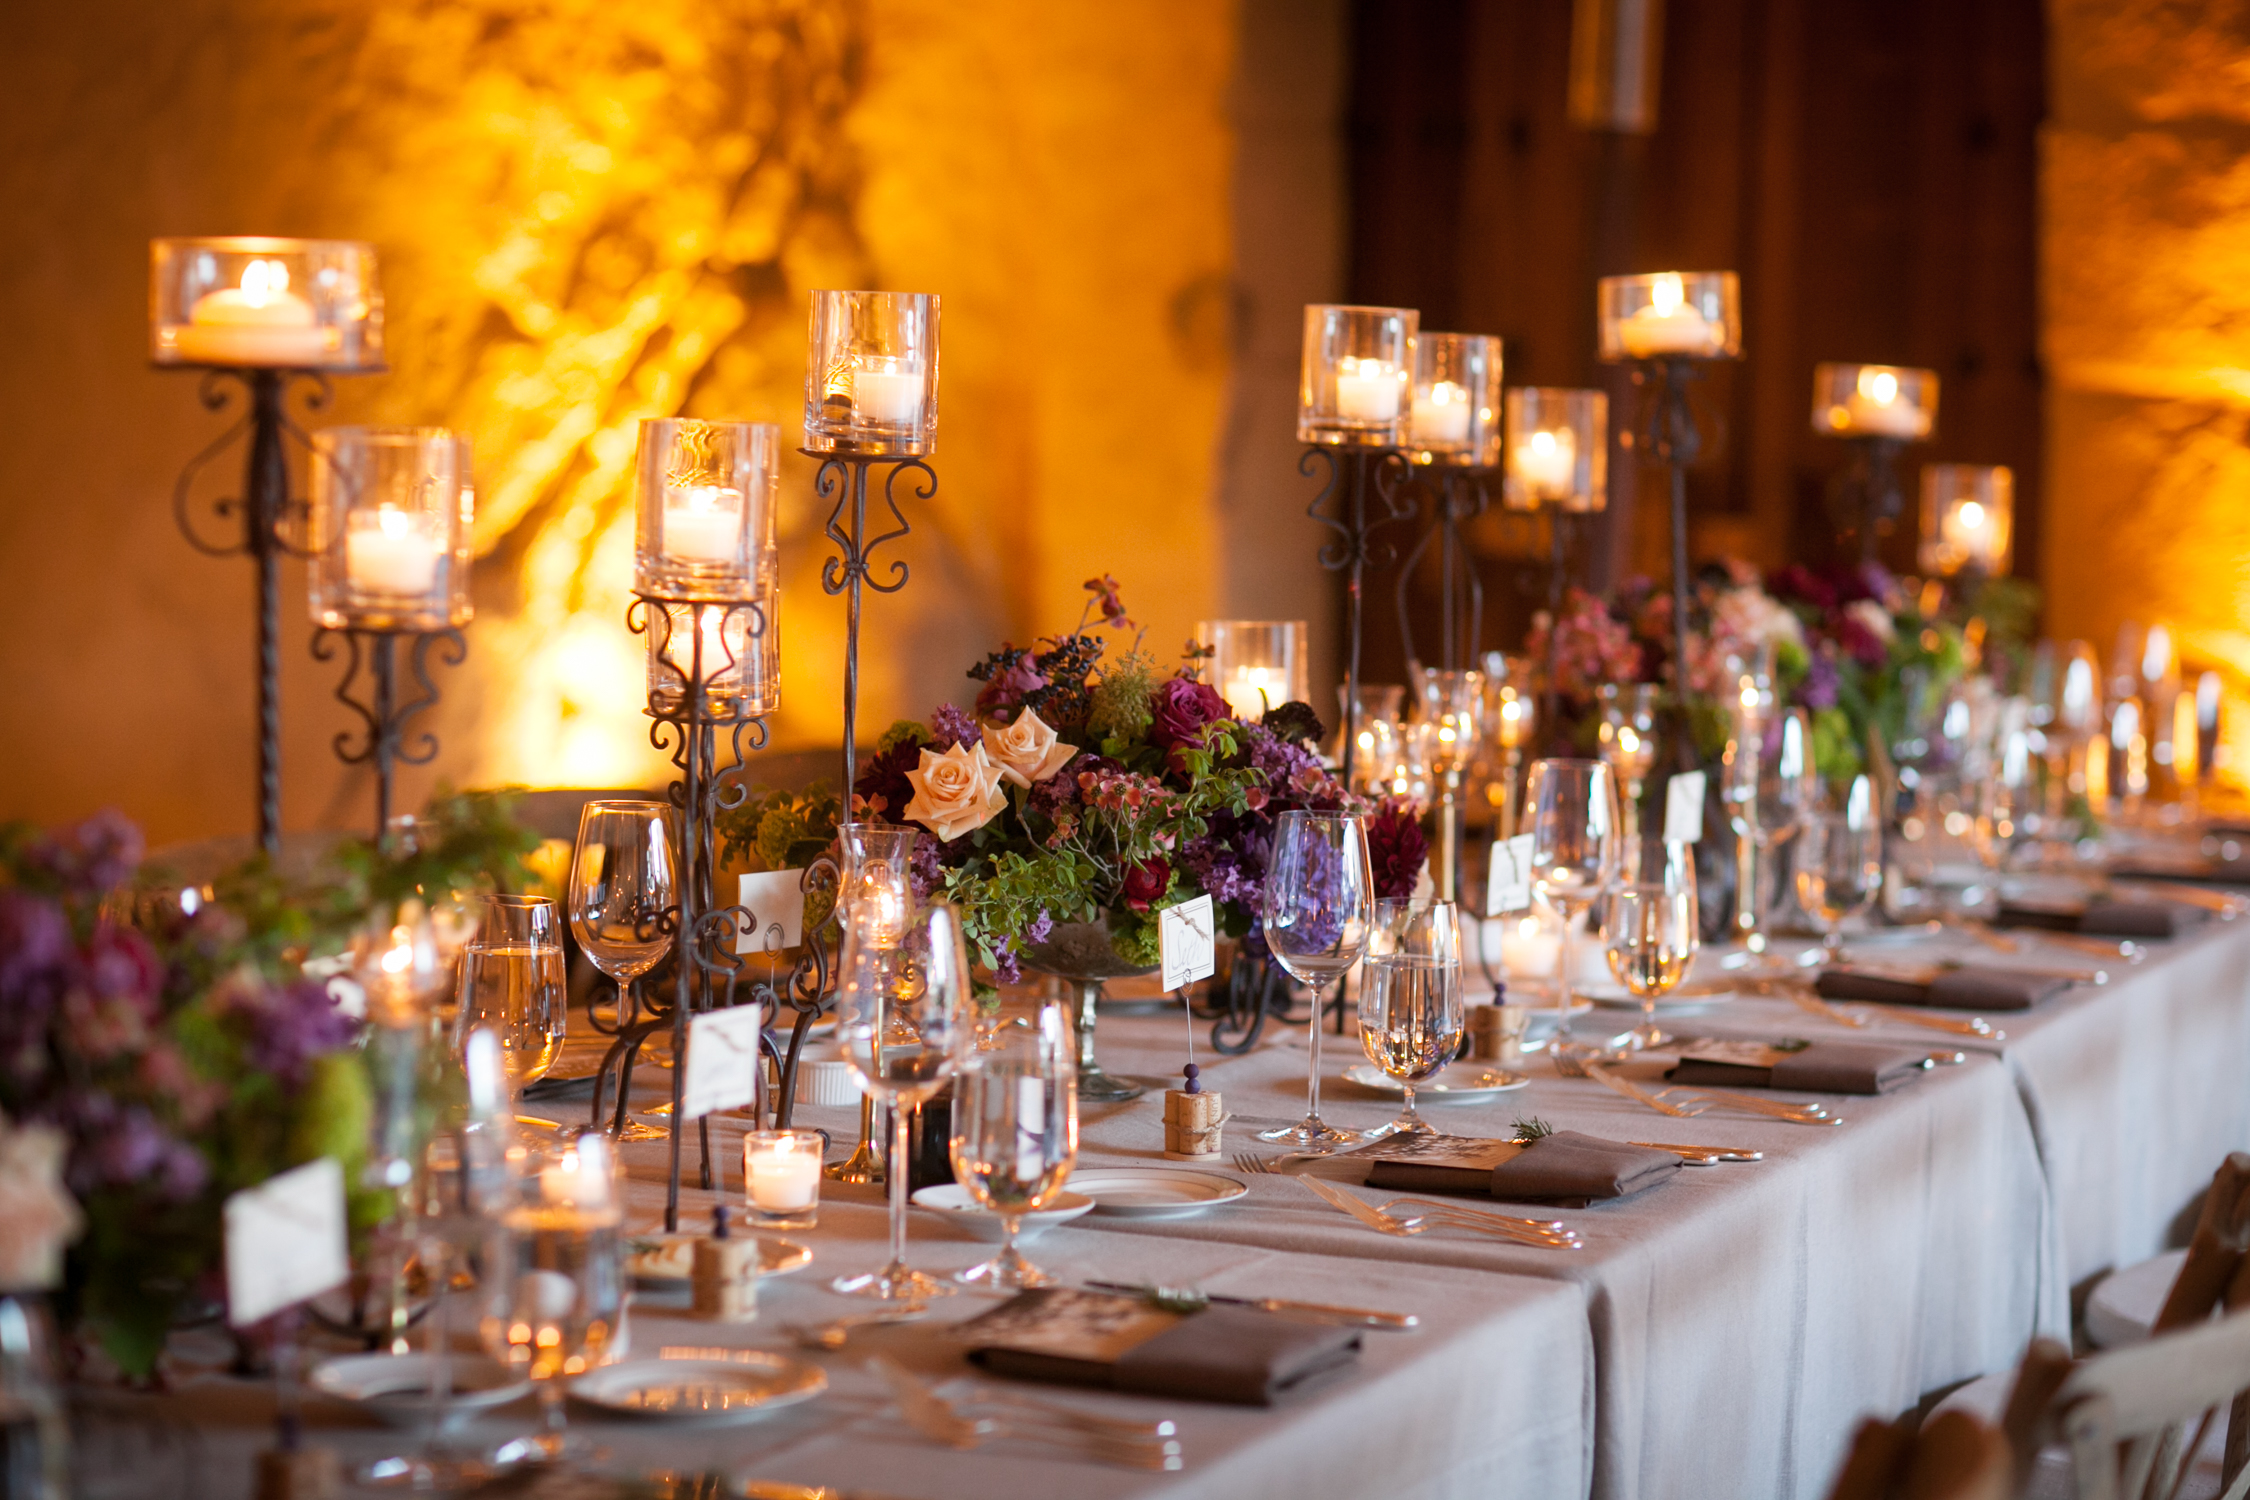 santa-barbara-elopement-tuscan-villa-winery-vineyard-rustic-cuvee-cave-dinner-wedding (15).jpg